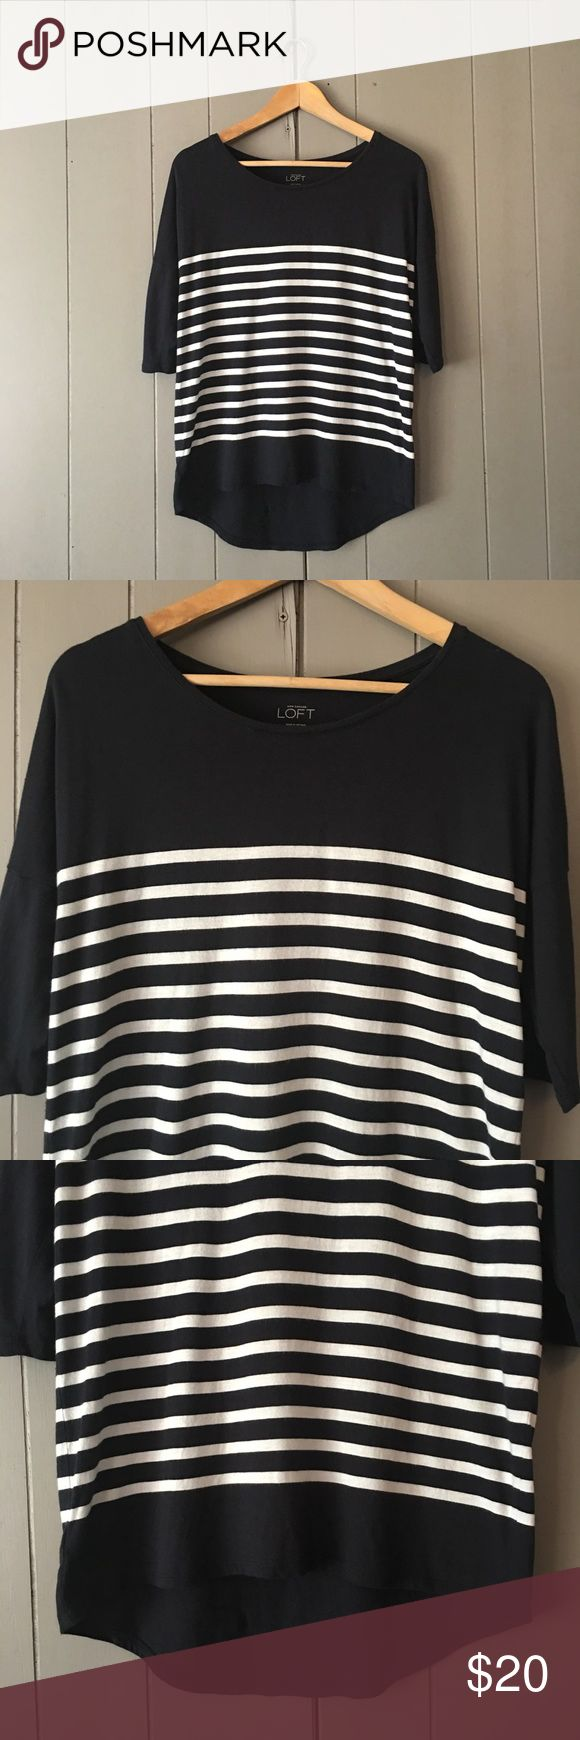 "Ann Taylor Loft Navy & White Striped Boat Neck Top Adorable 1/2 sleeve, high-low shirt in good condition! Armpit to armpit is 20"". Length is 23"" in the front and 27"" in the back. Offers are welcome. ☺️ LOFT Tops"